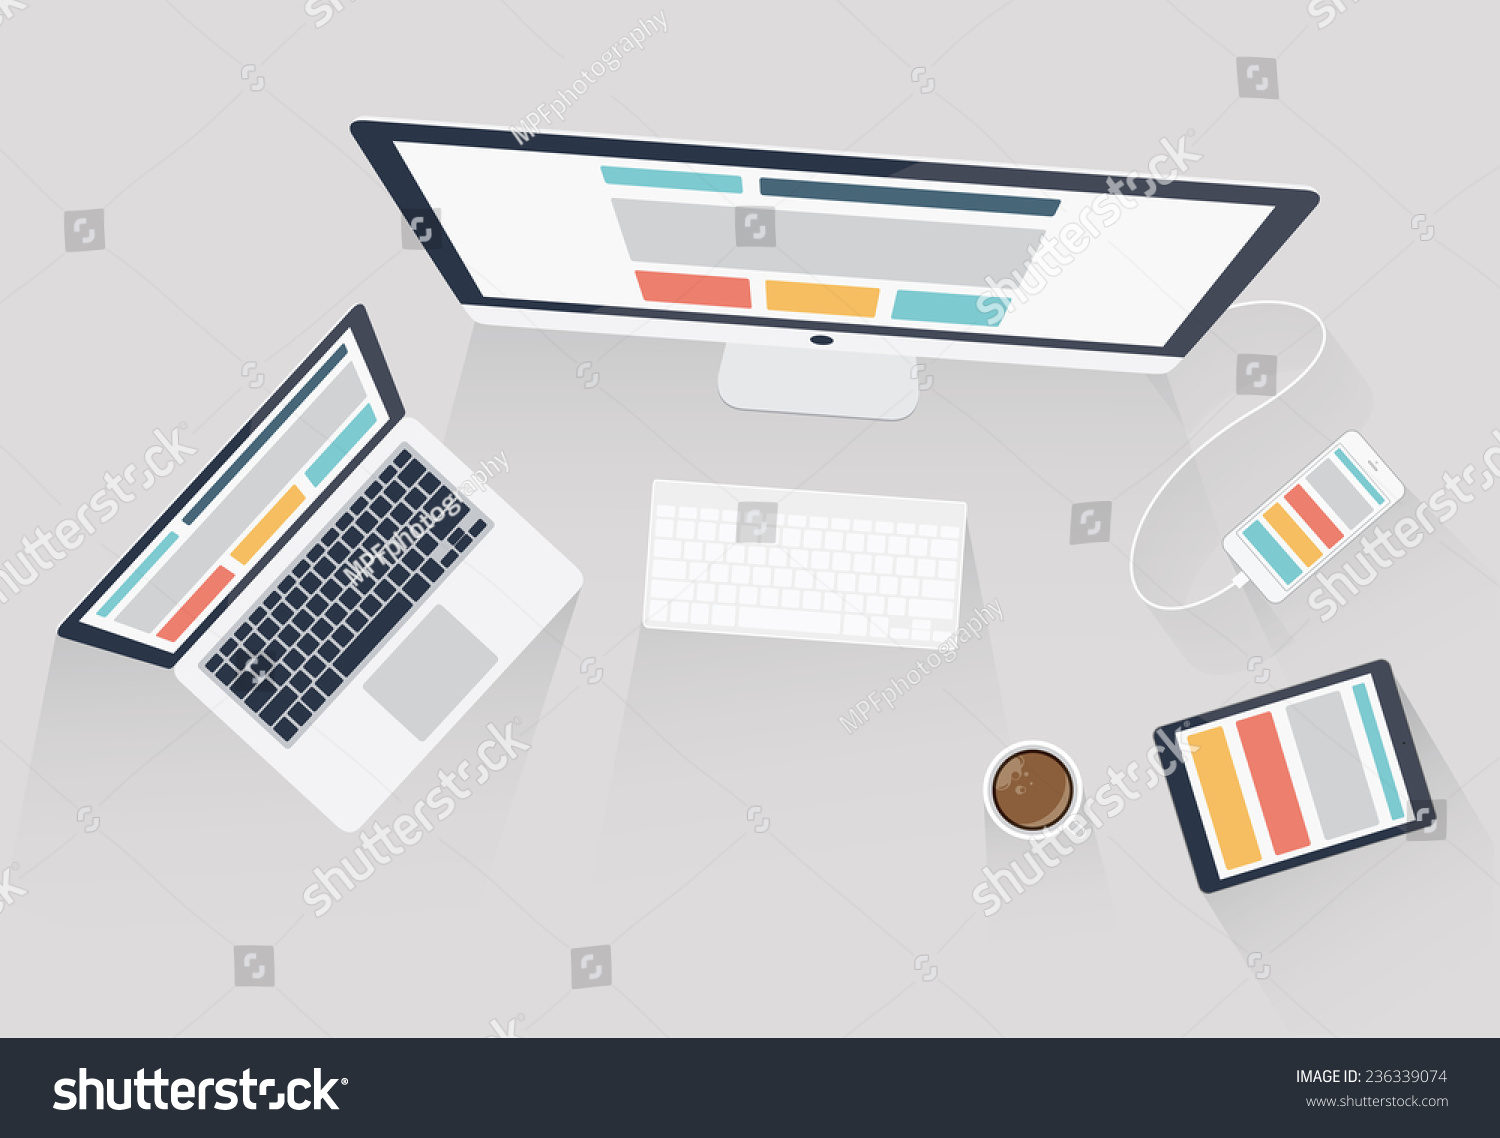 web design and web development vector illustration flat office desk